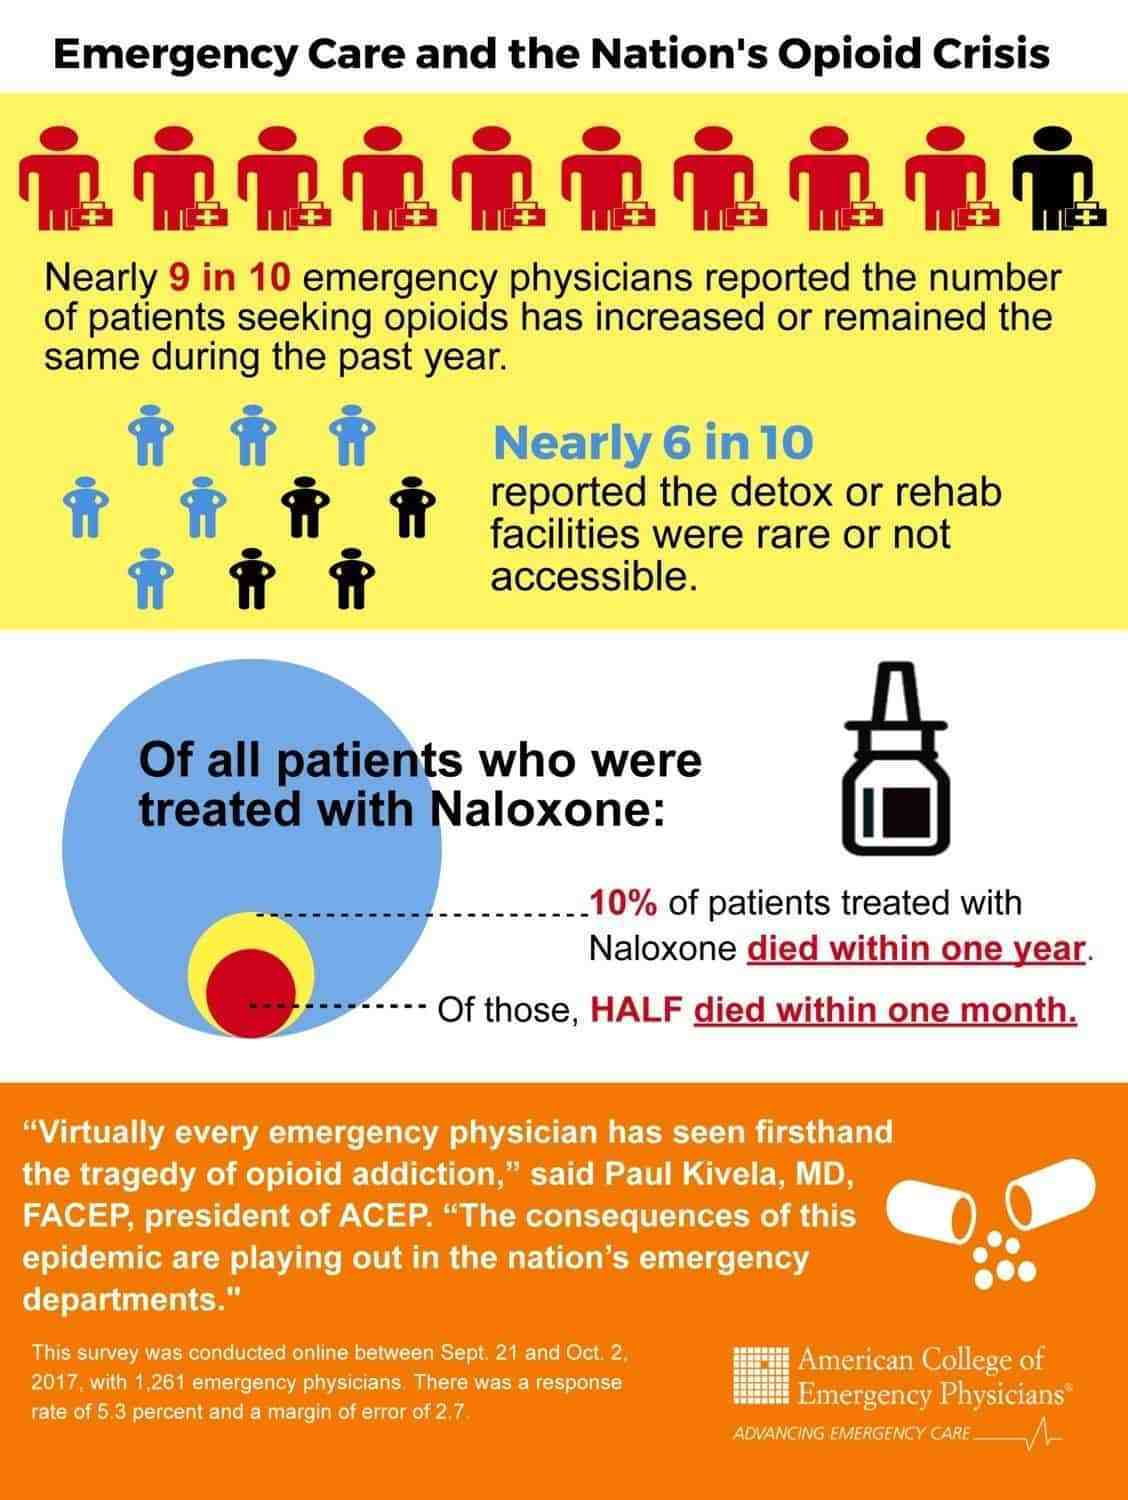 Emergency Care and the Nations opioid crisis infographic image